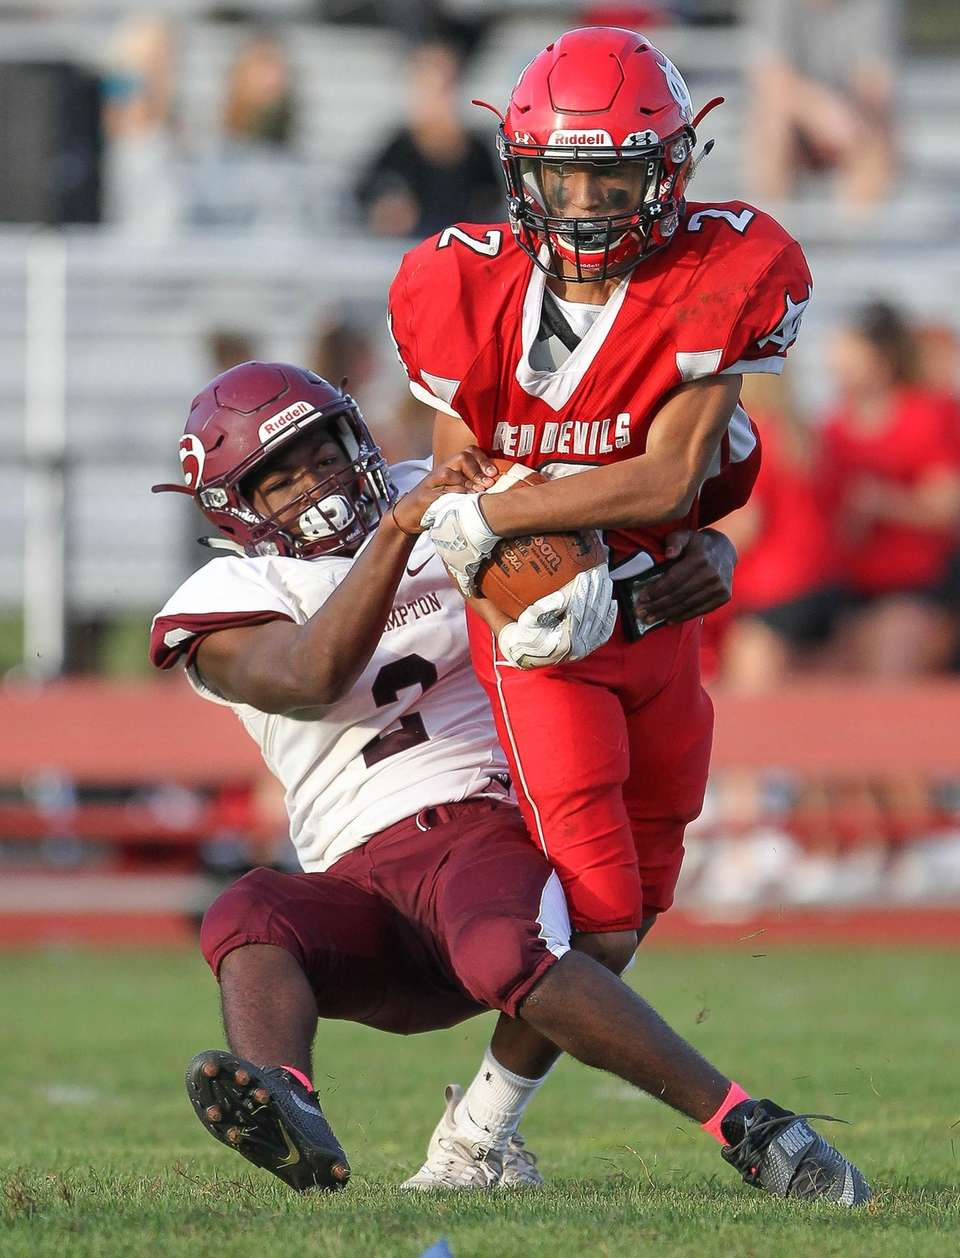 Southampton's Adonis Hutchings (2) takes down Center Moriches